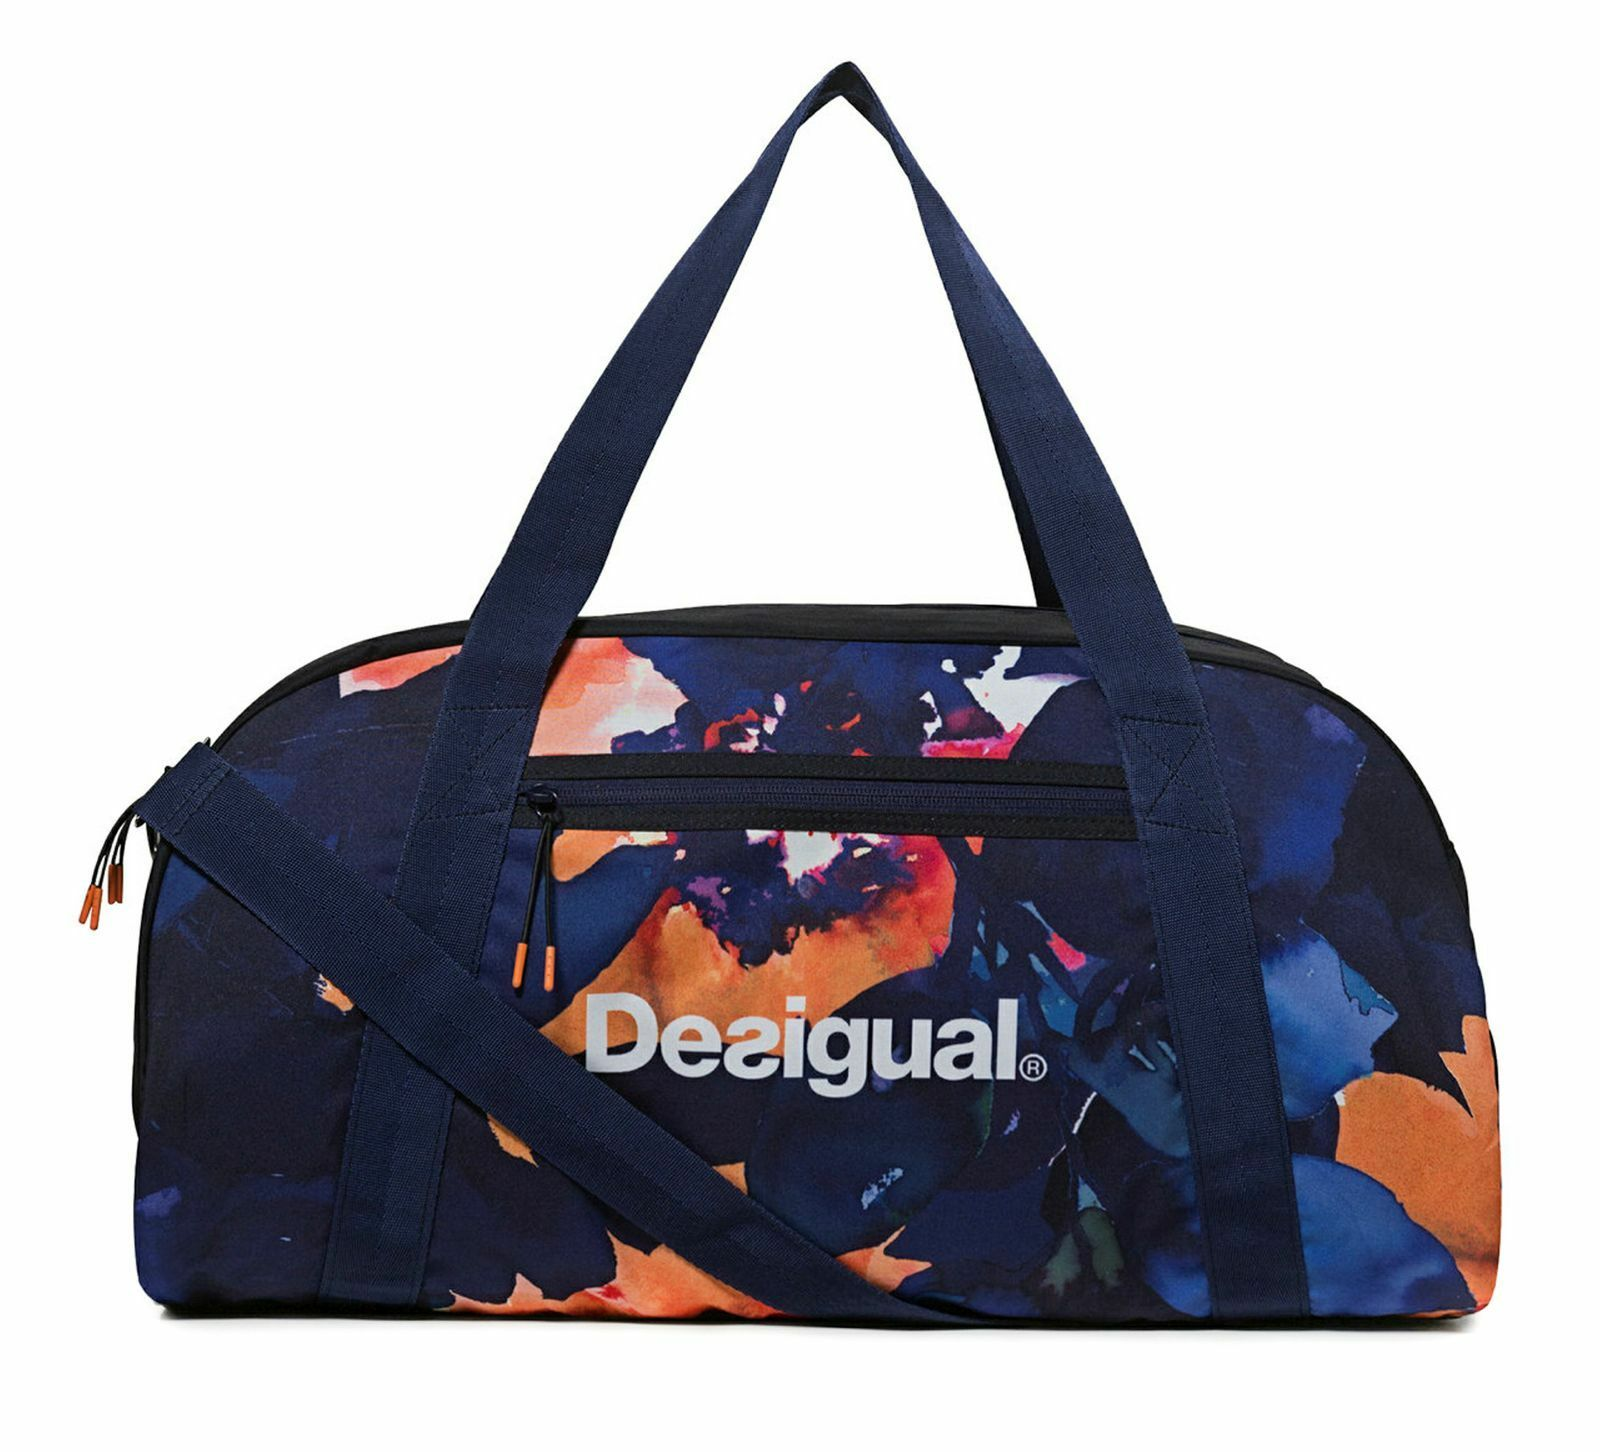 Desigual Camo Flower Victoria Gym Bag Sporttasche Tasche bluee Tinta bluee orange